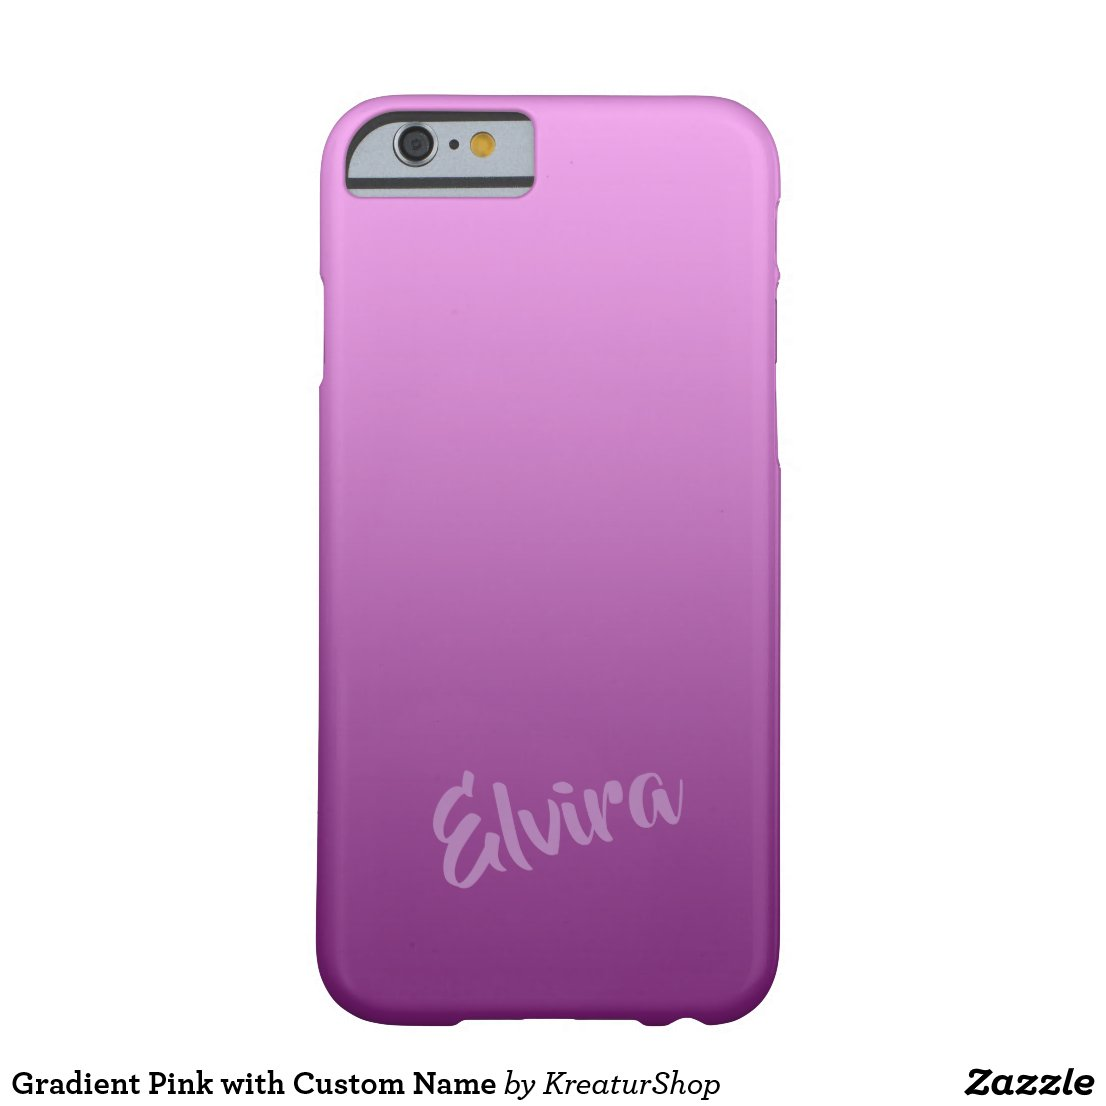 Gradient Pink with Custom Name